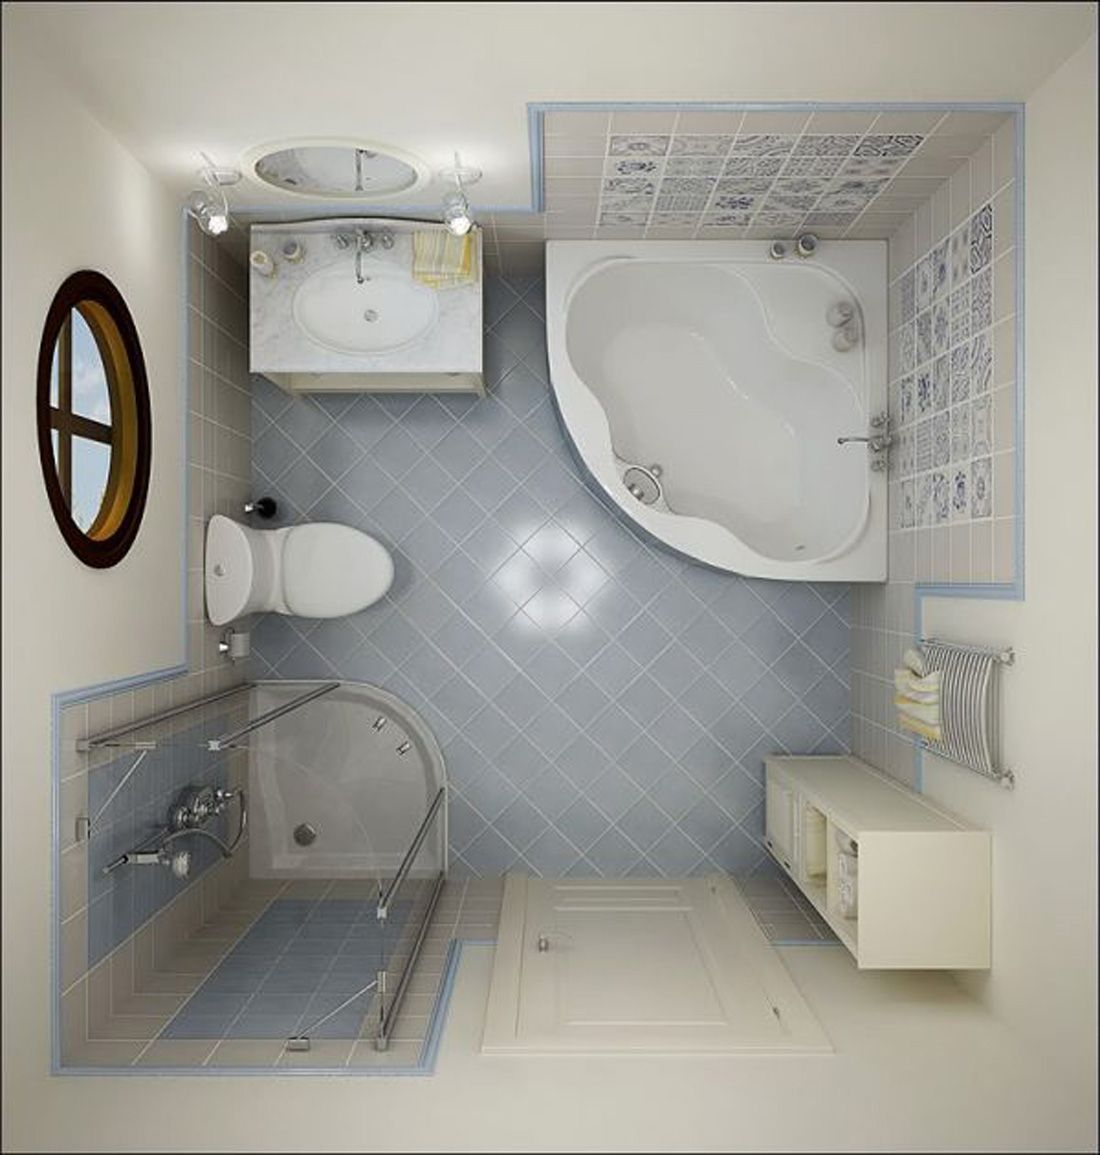 Very small bathroom floor plans - Exemplary New Bathrooms Ideas Small Bathrooms For Homes And Apartments Ikea Small Apartment Bathroom Layout With New Bathrooms Ideas Small Bathrooms And